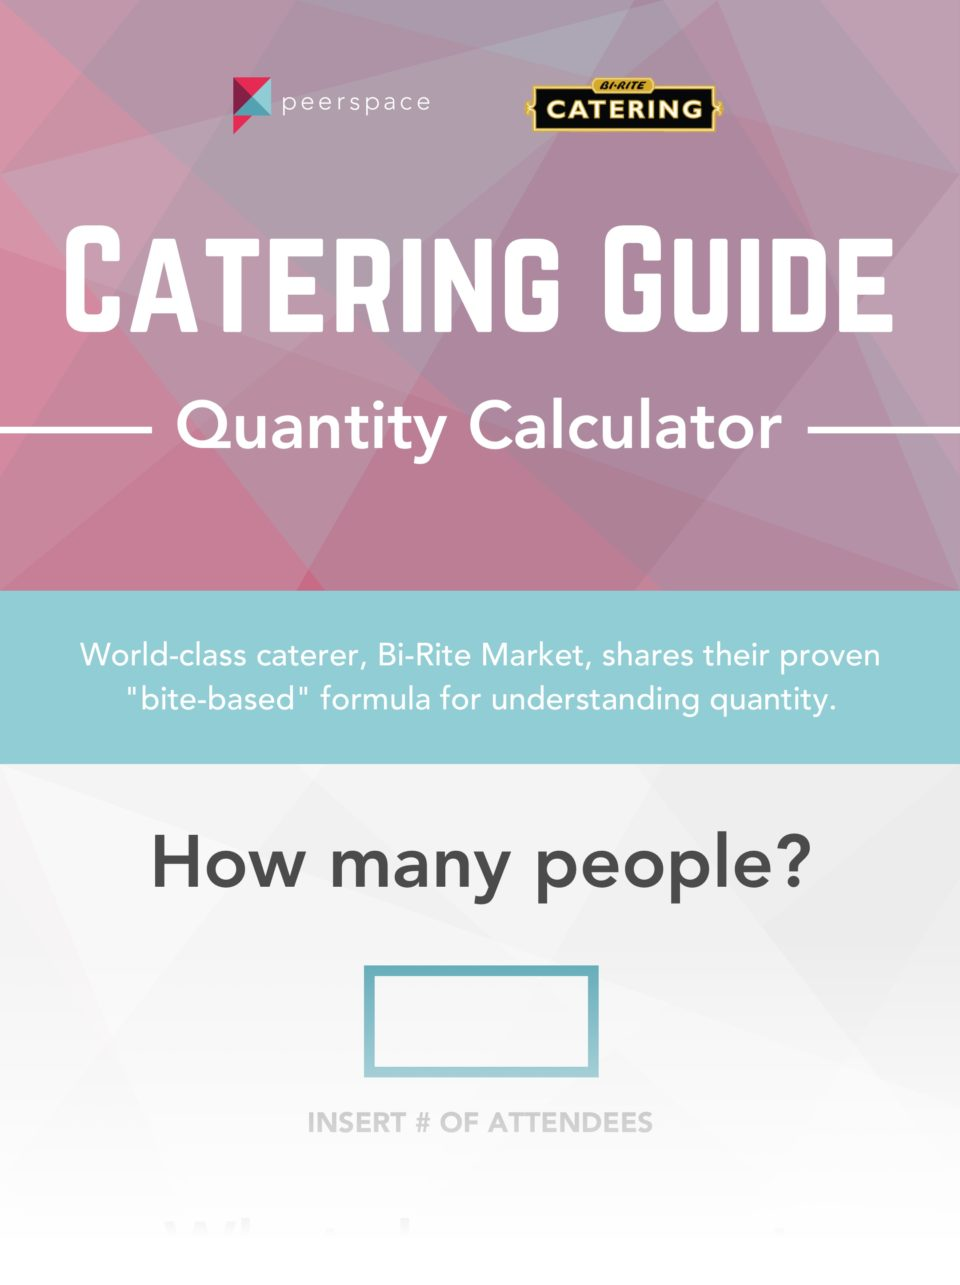 Catering Menu Ideas - Quantity Calculator